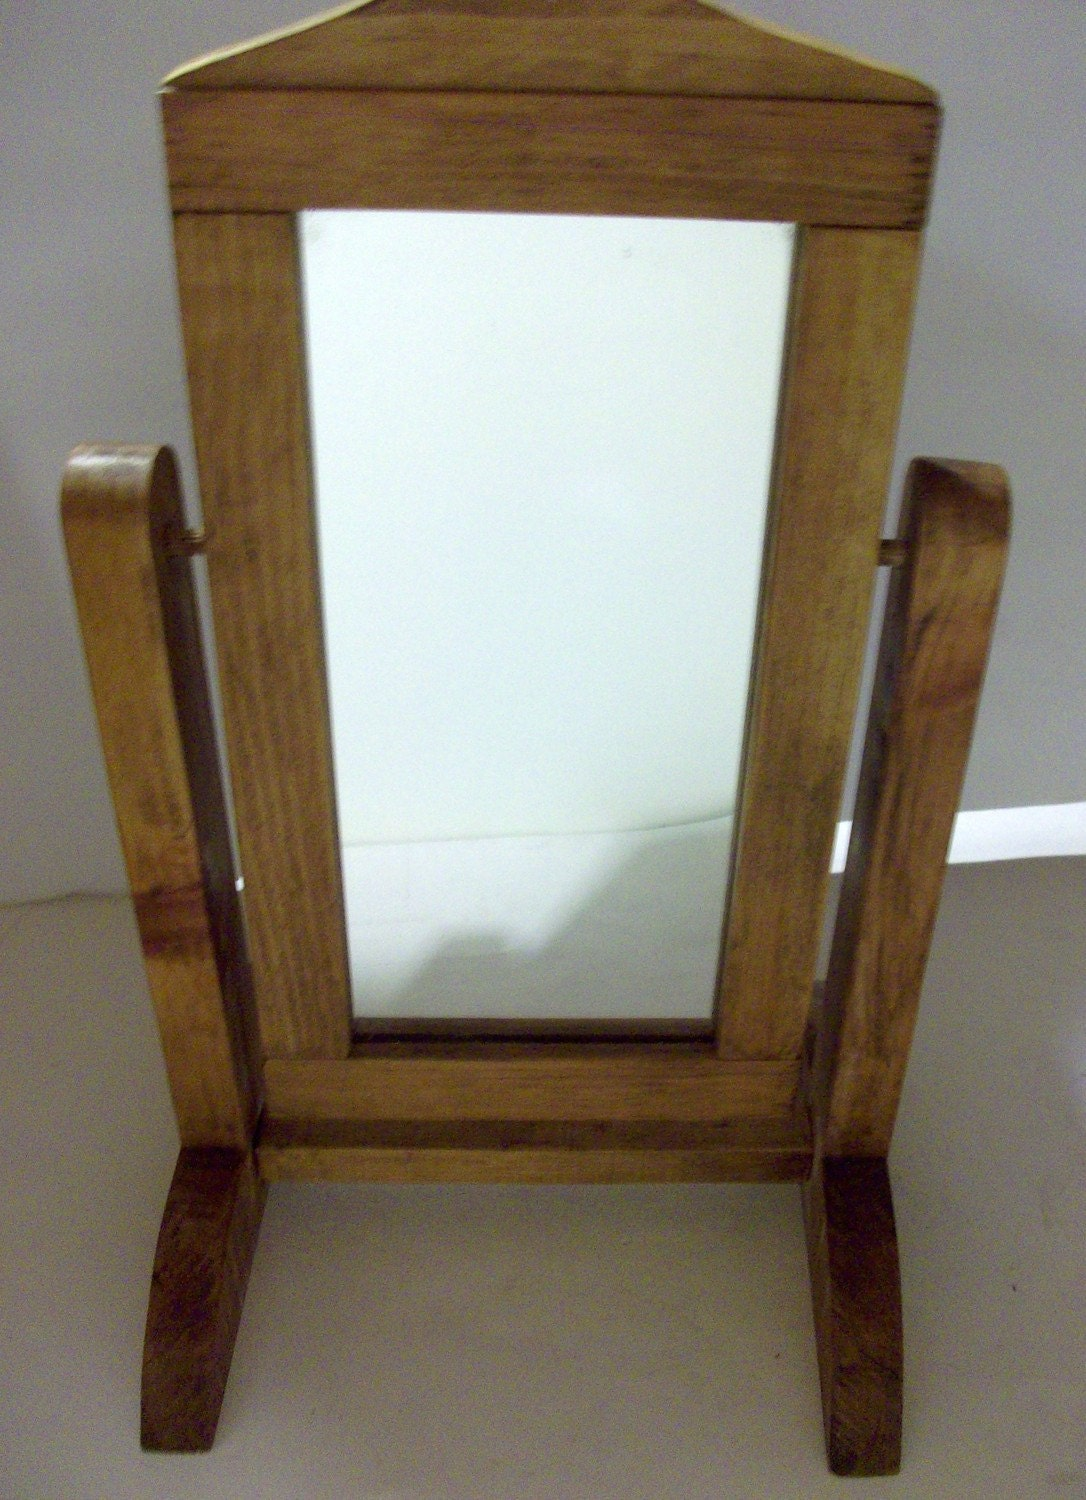 Wooden floor mirror stand for 18 doll by newtwoyou on etsy for Mirror stand